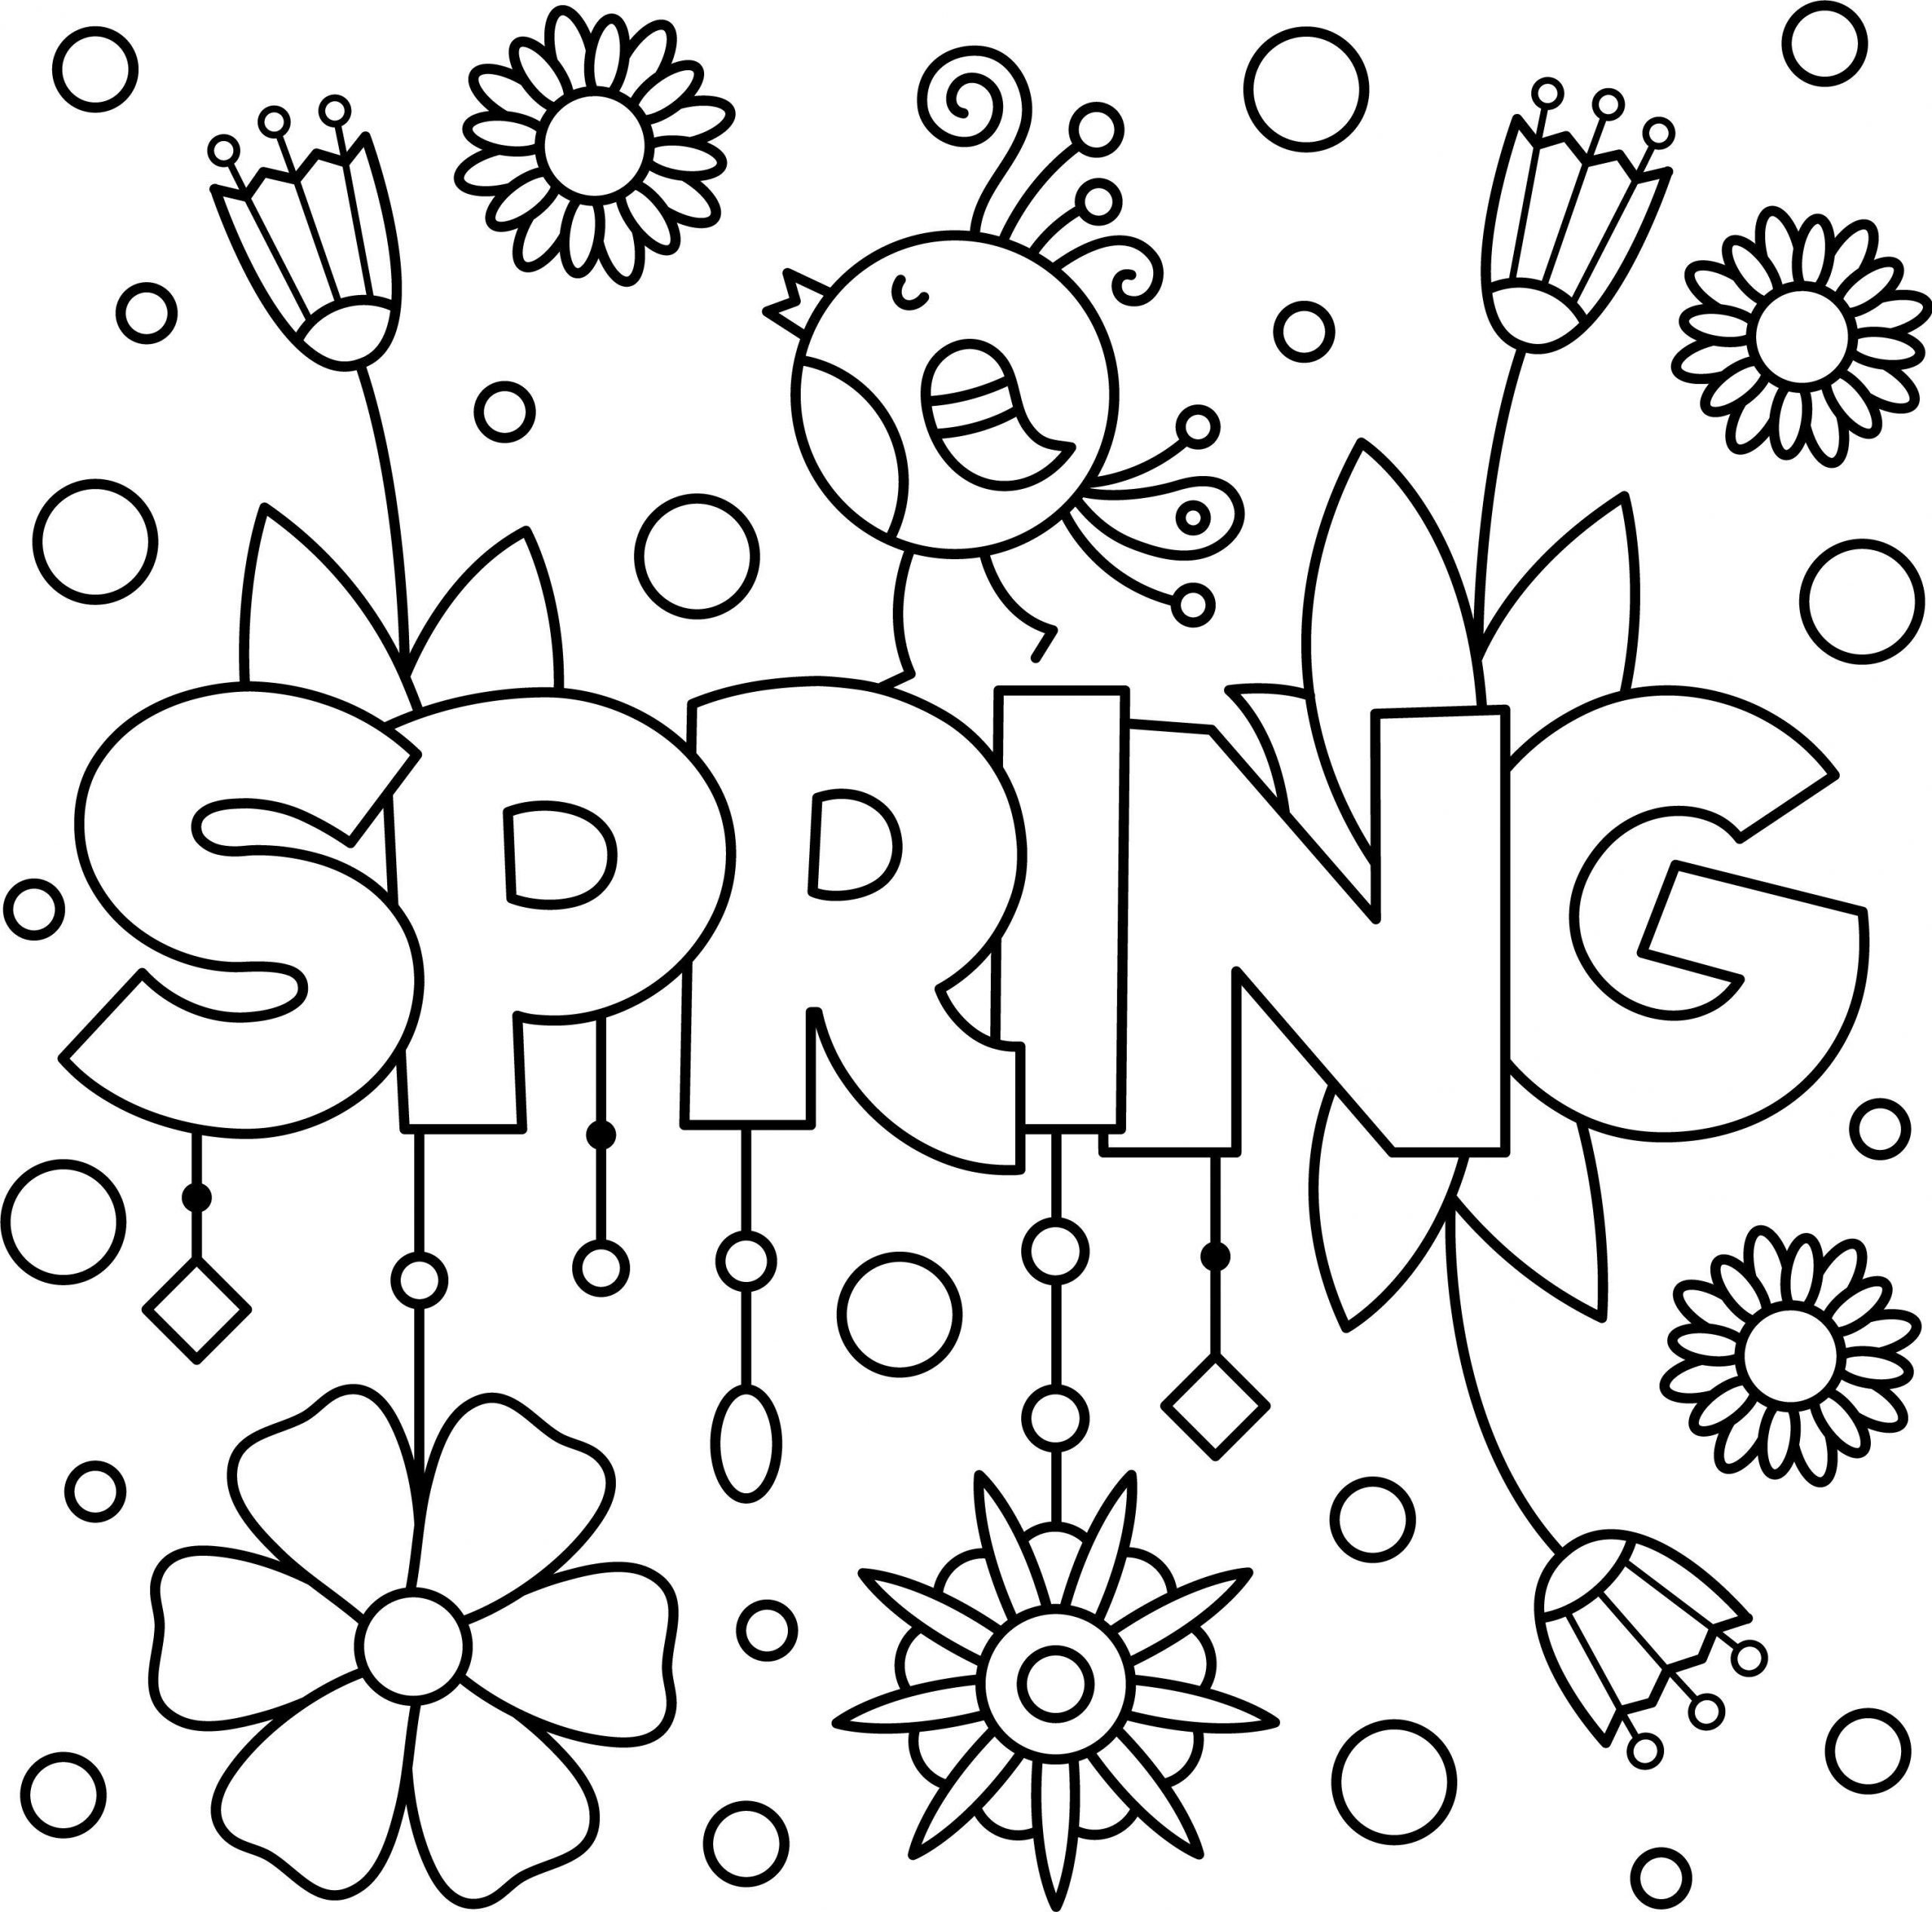 springtime coloring pages for toddlers spring worksheets preschoolers fall prek scaled printable letter preschool pdf